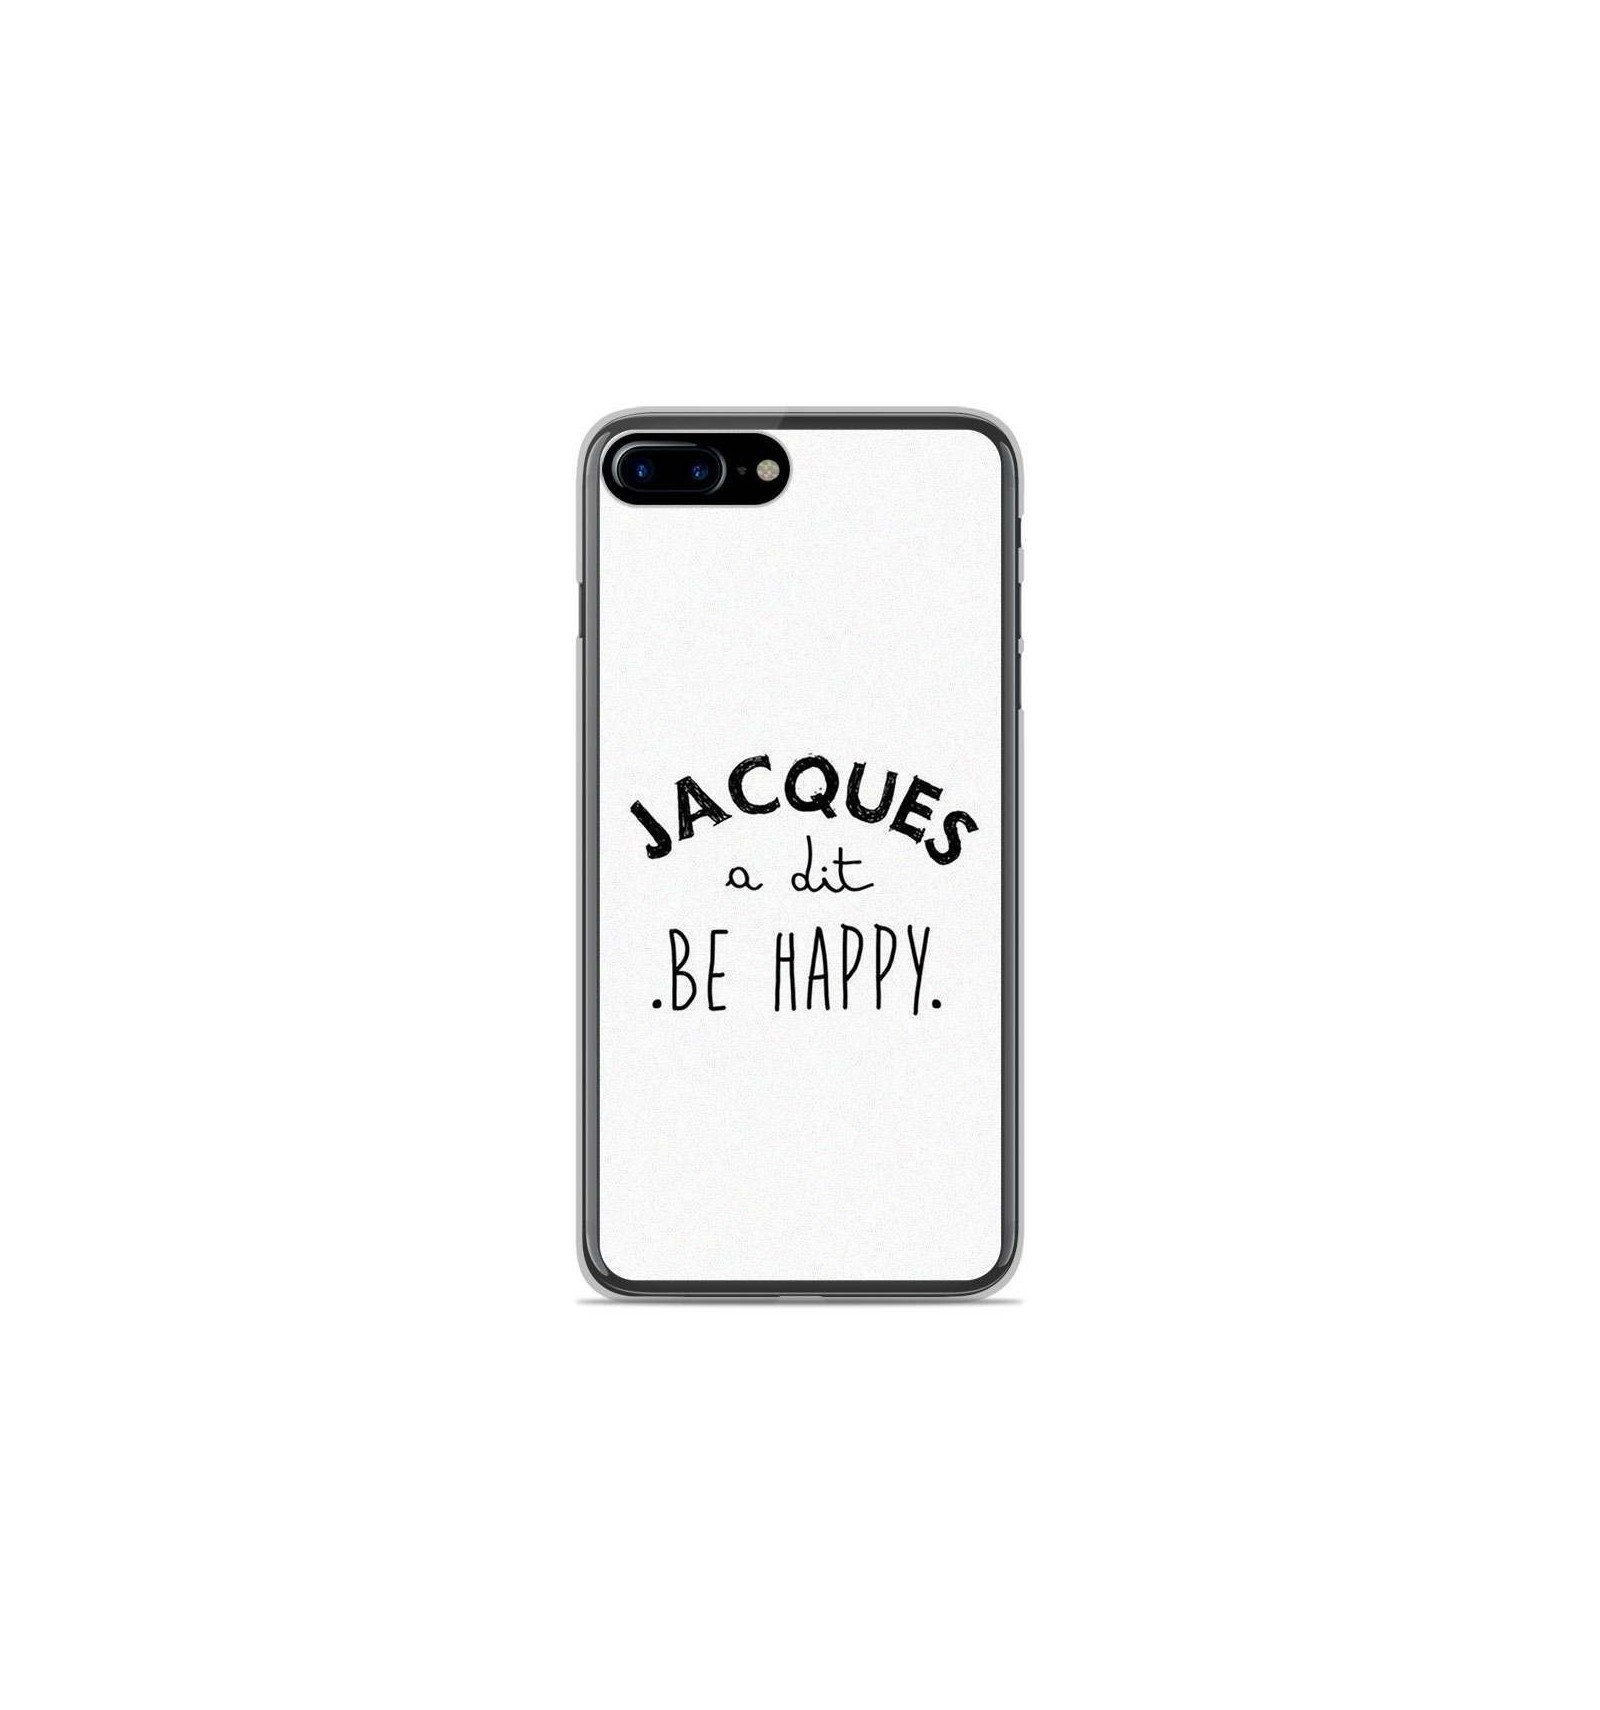 apple coque silicone iphone 8 plus